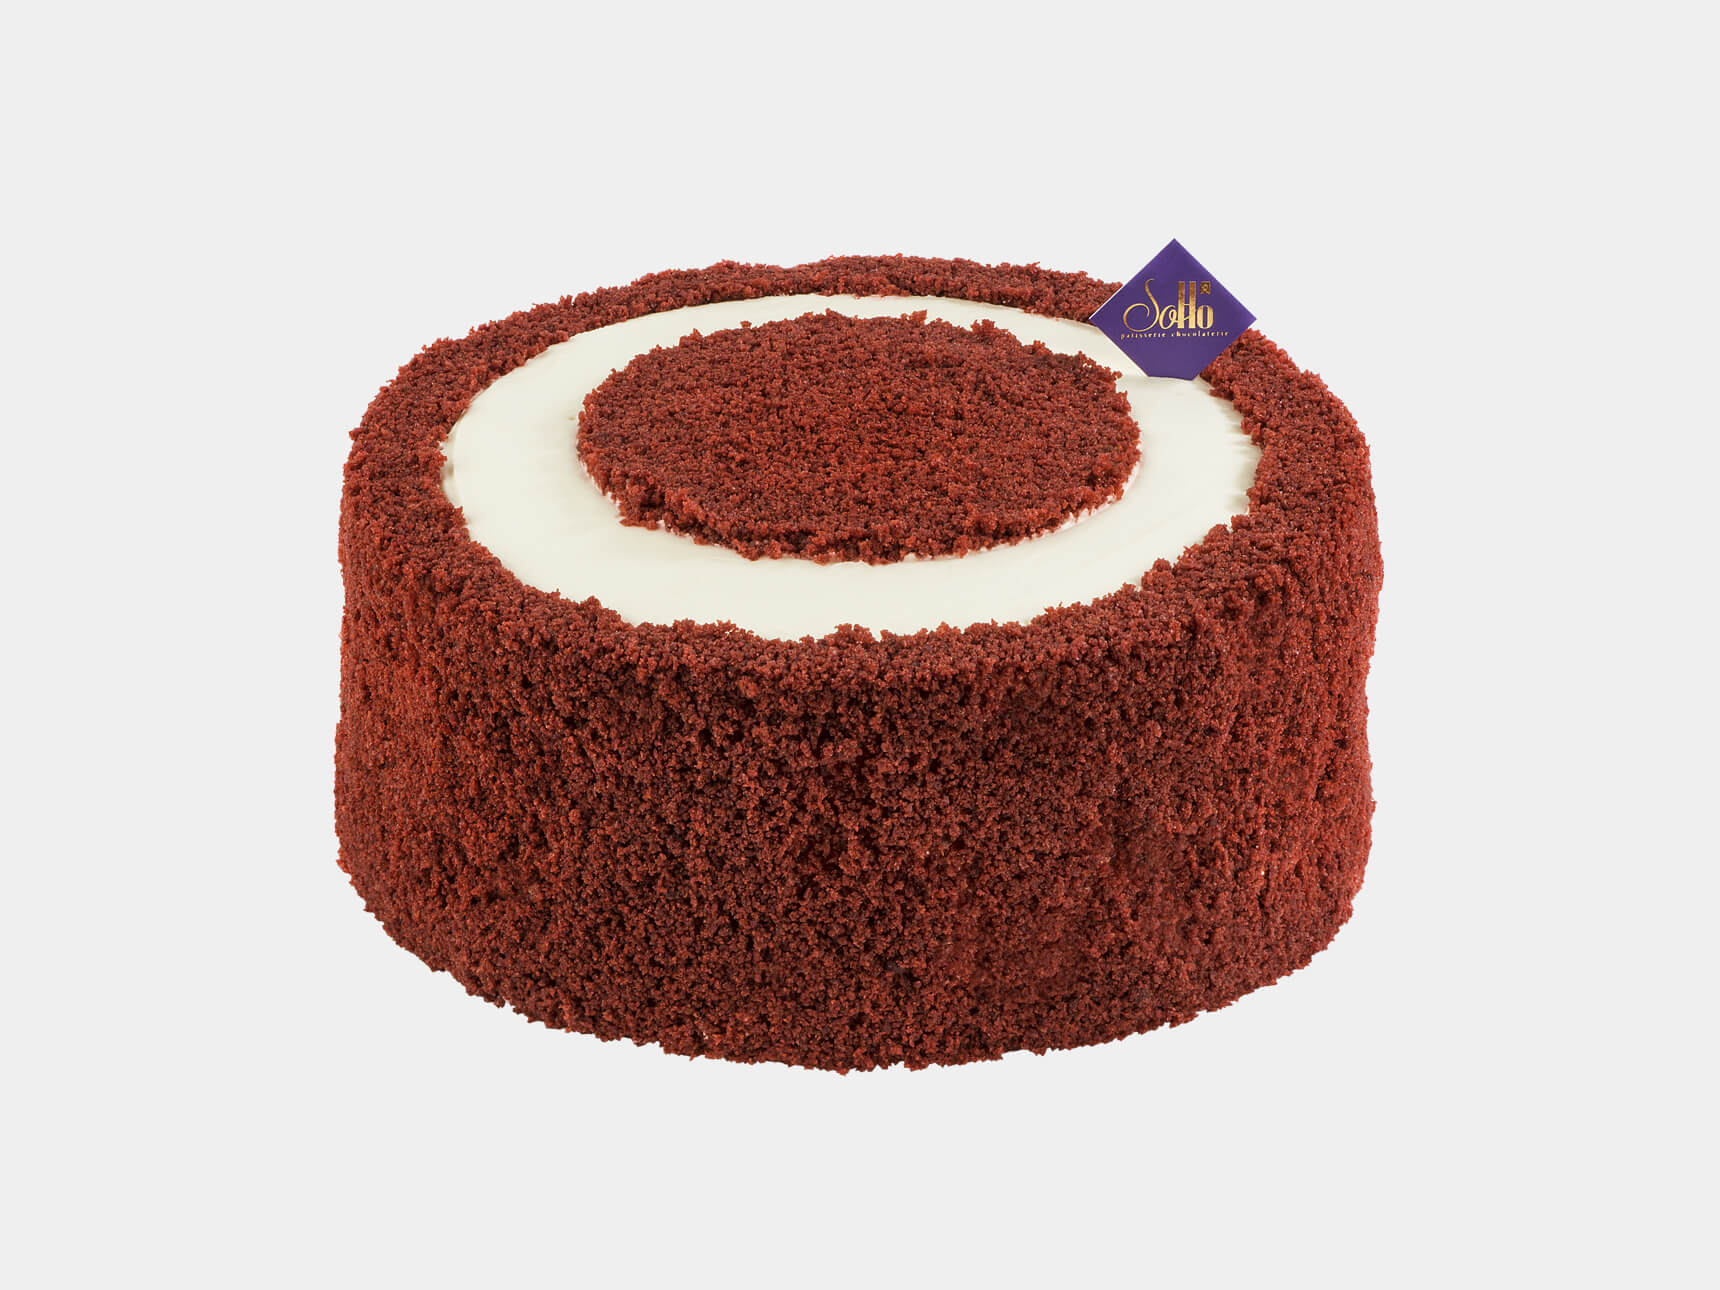 Whole Cake Red Velvet small